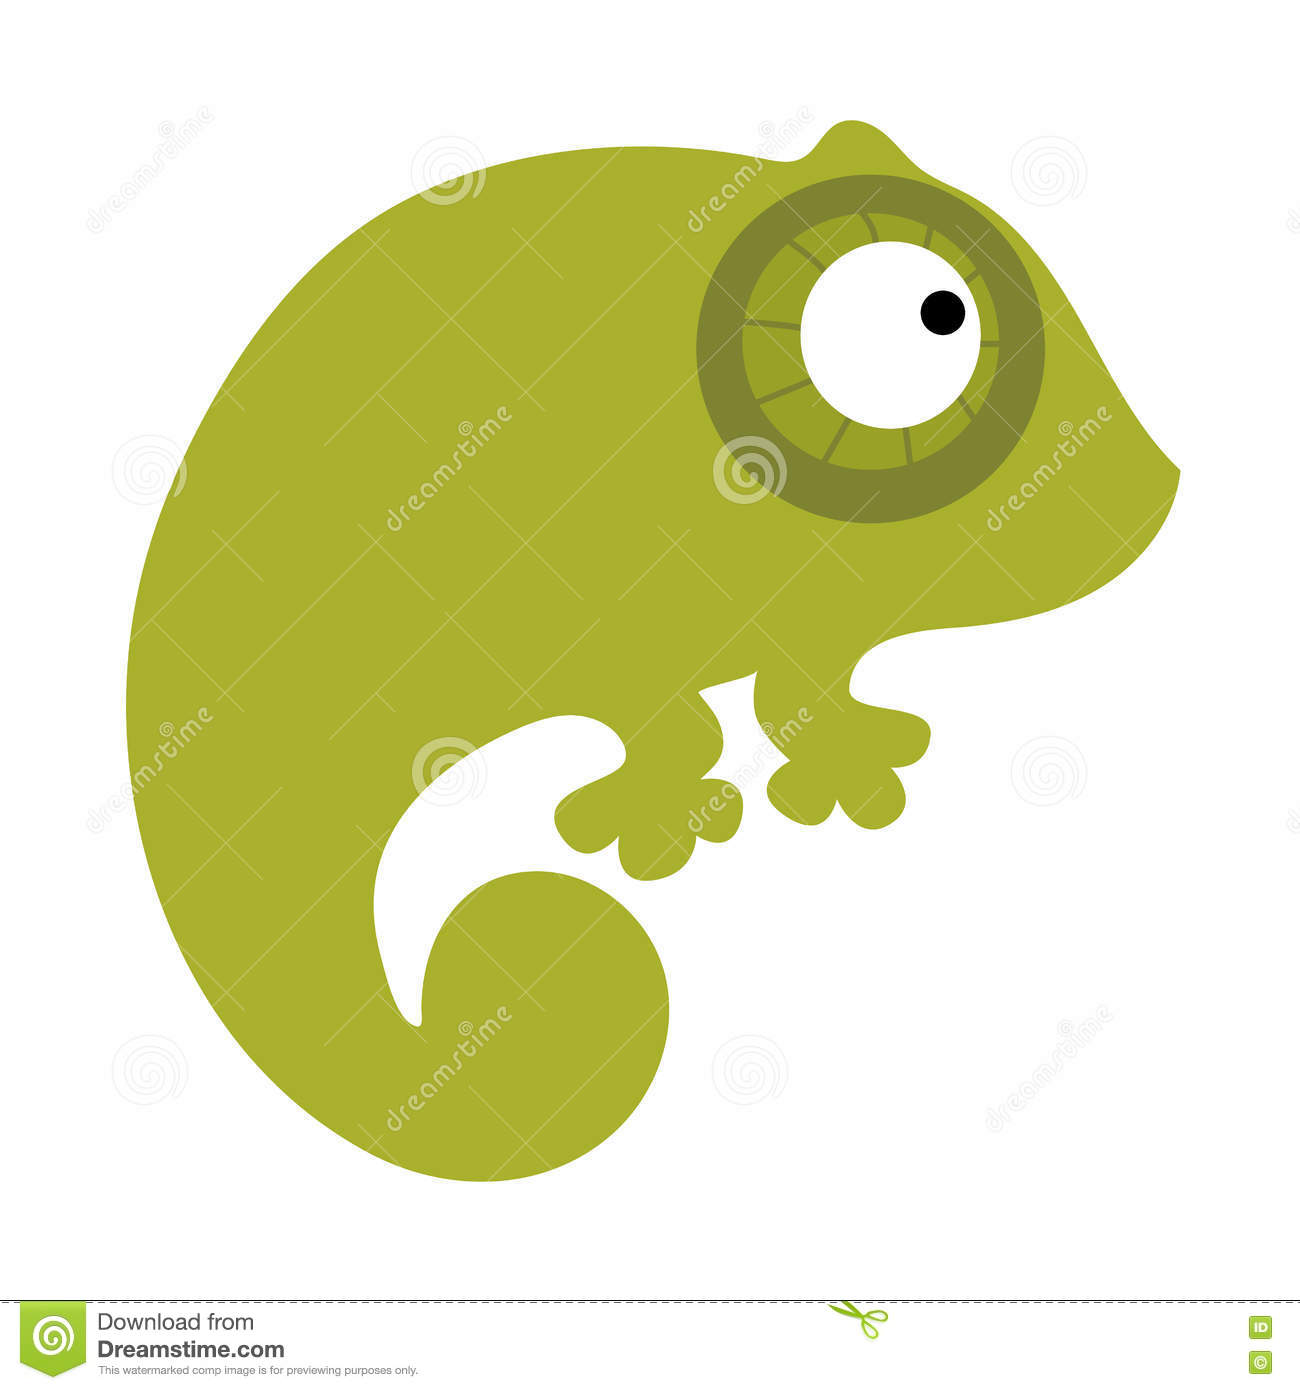 Colored Icon Cute Baby Green Chameleon Stock Vector - Illustration ...